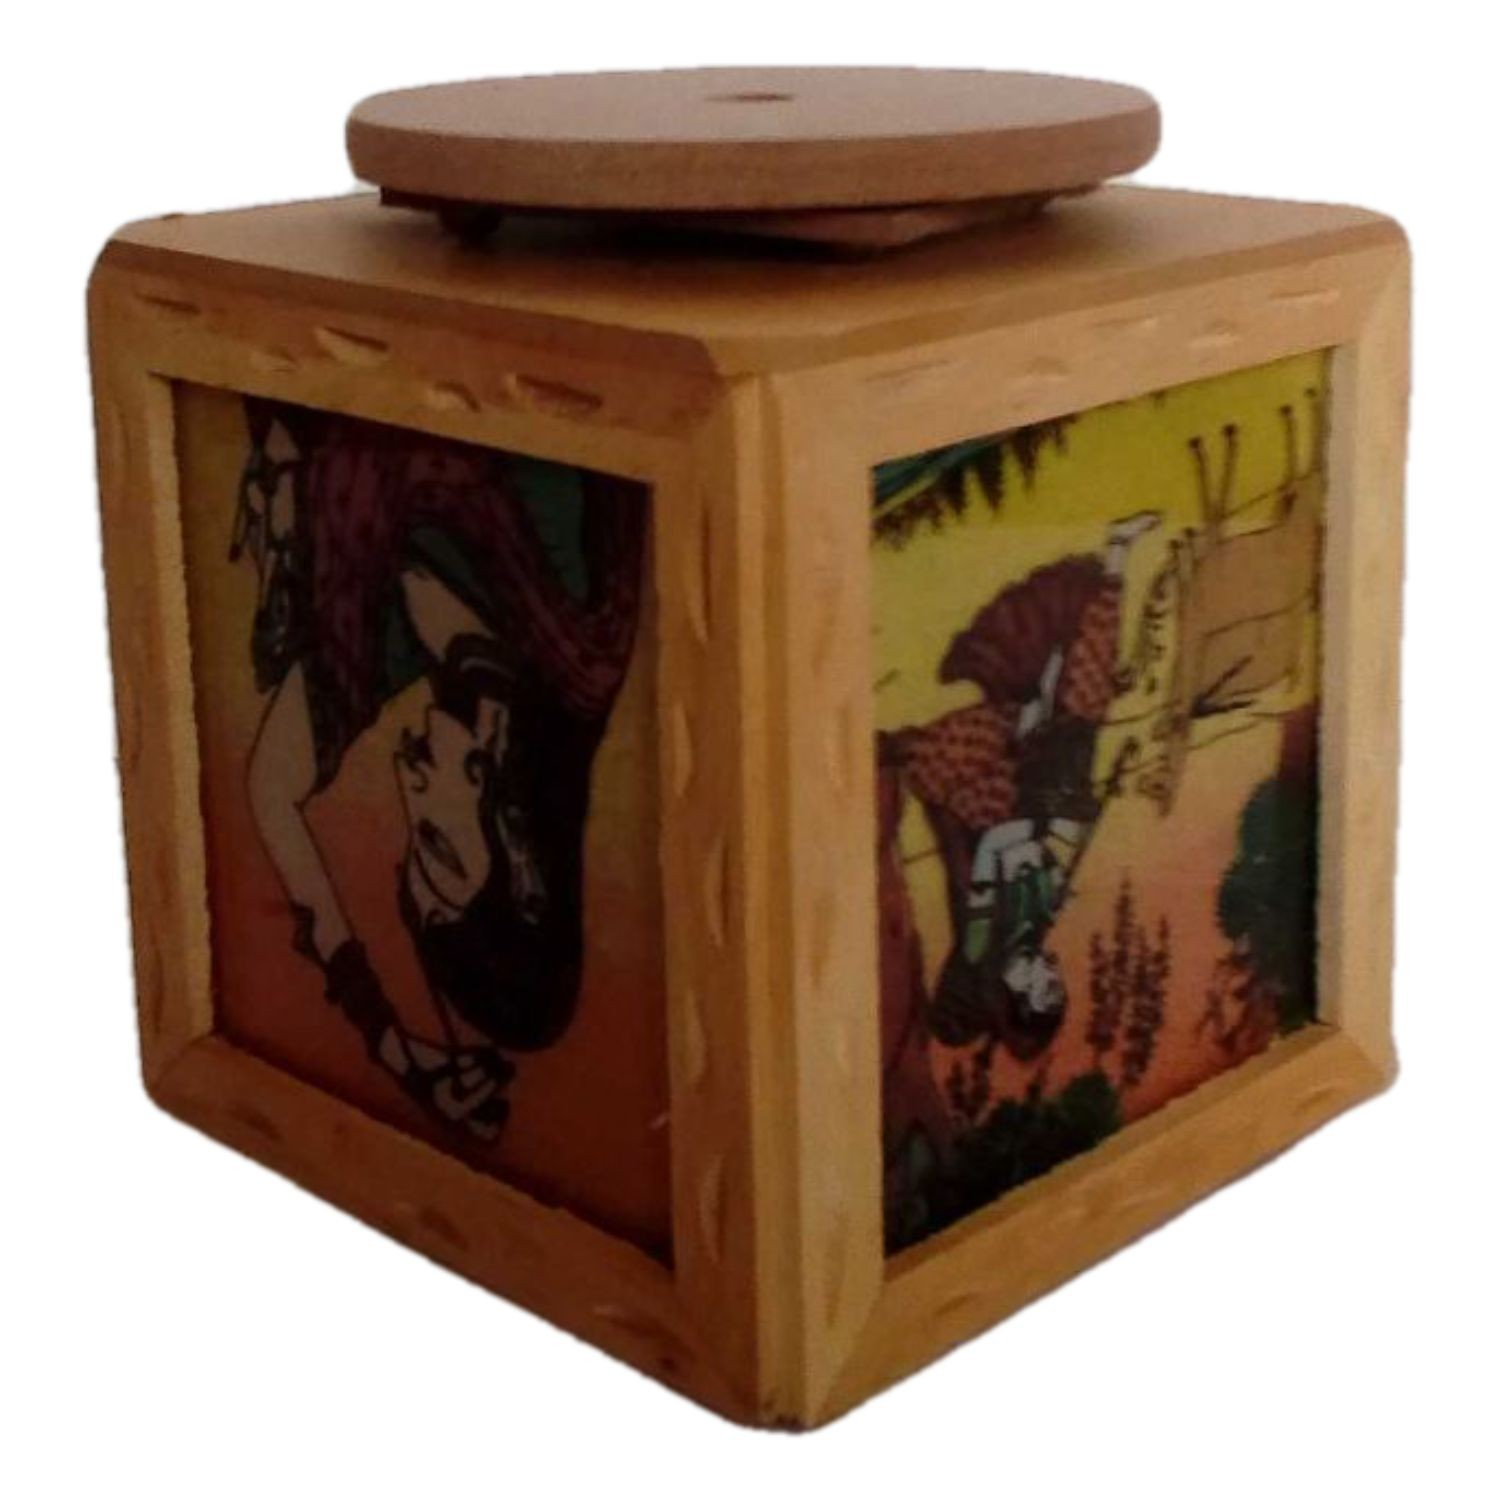 Handmade Excellent Multicolor Wooden pen and card stand with Beautiful Rajasthani Art by Awarded Indian Rural Artisan